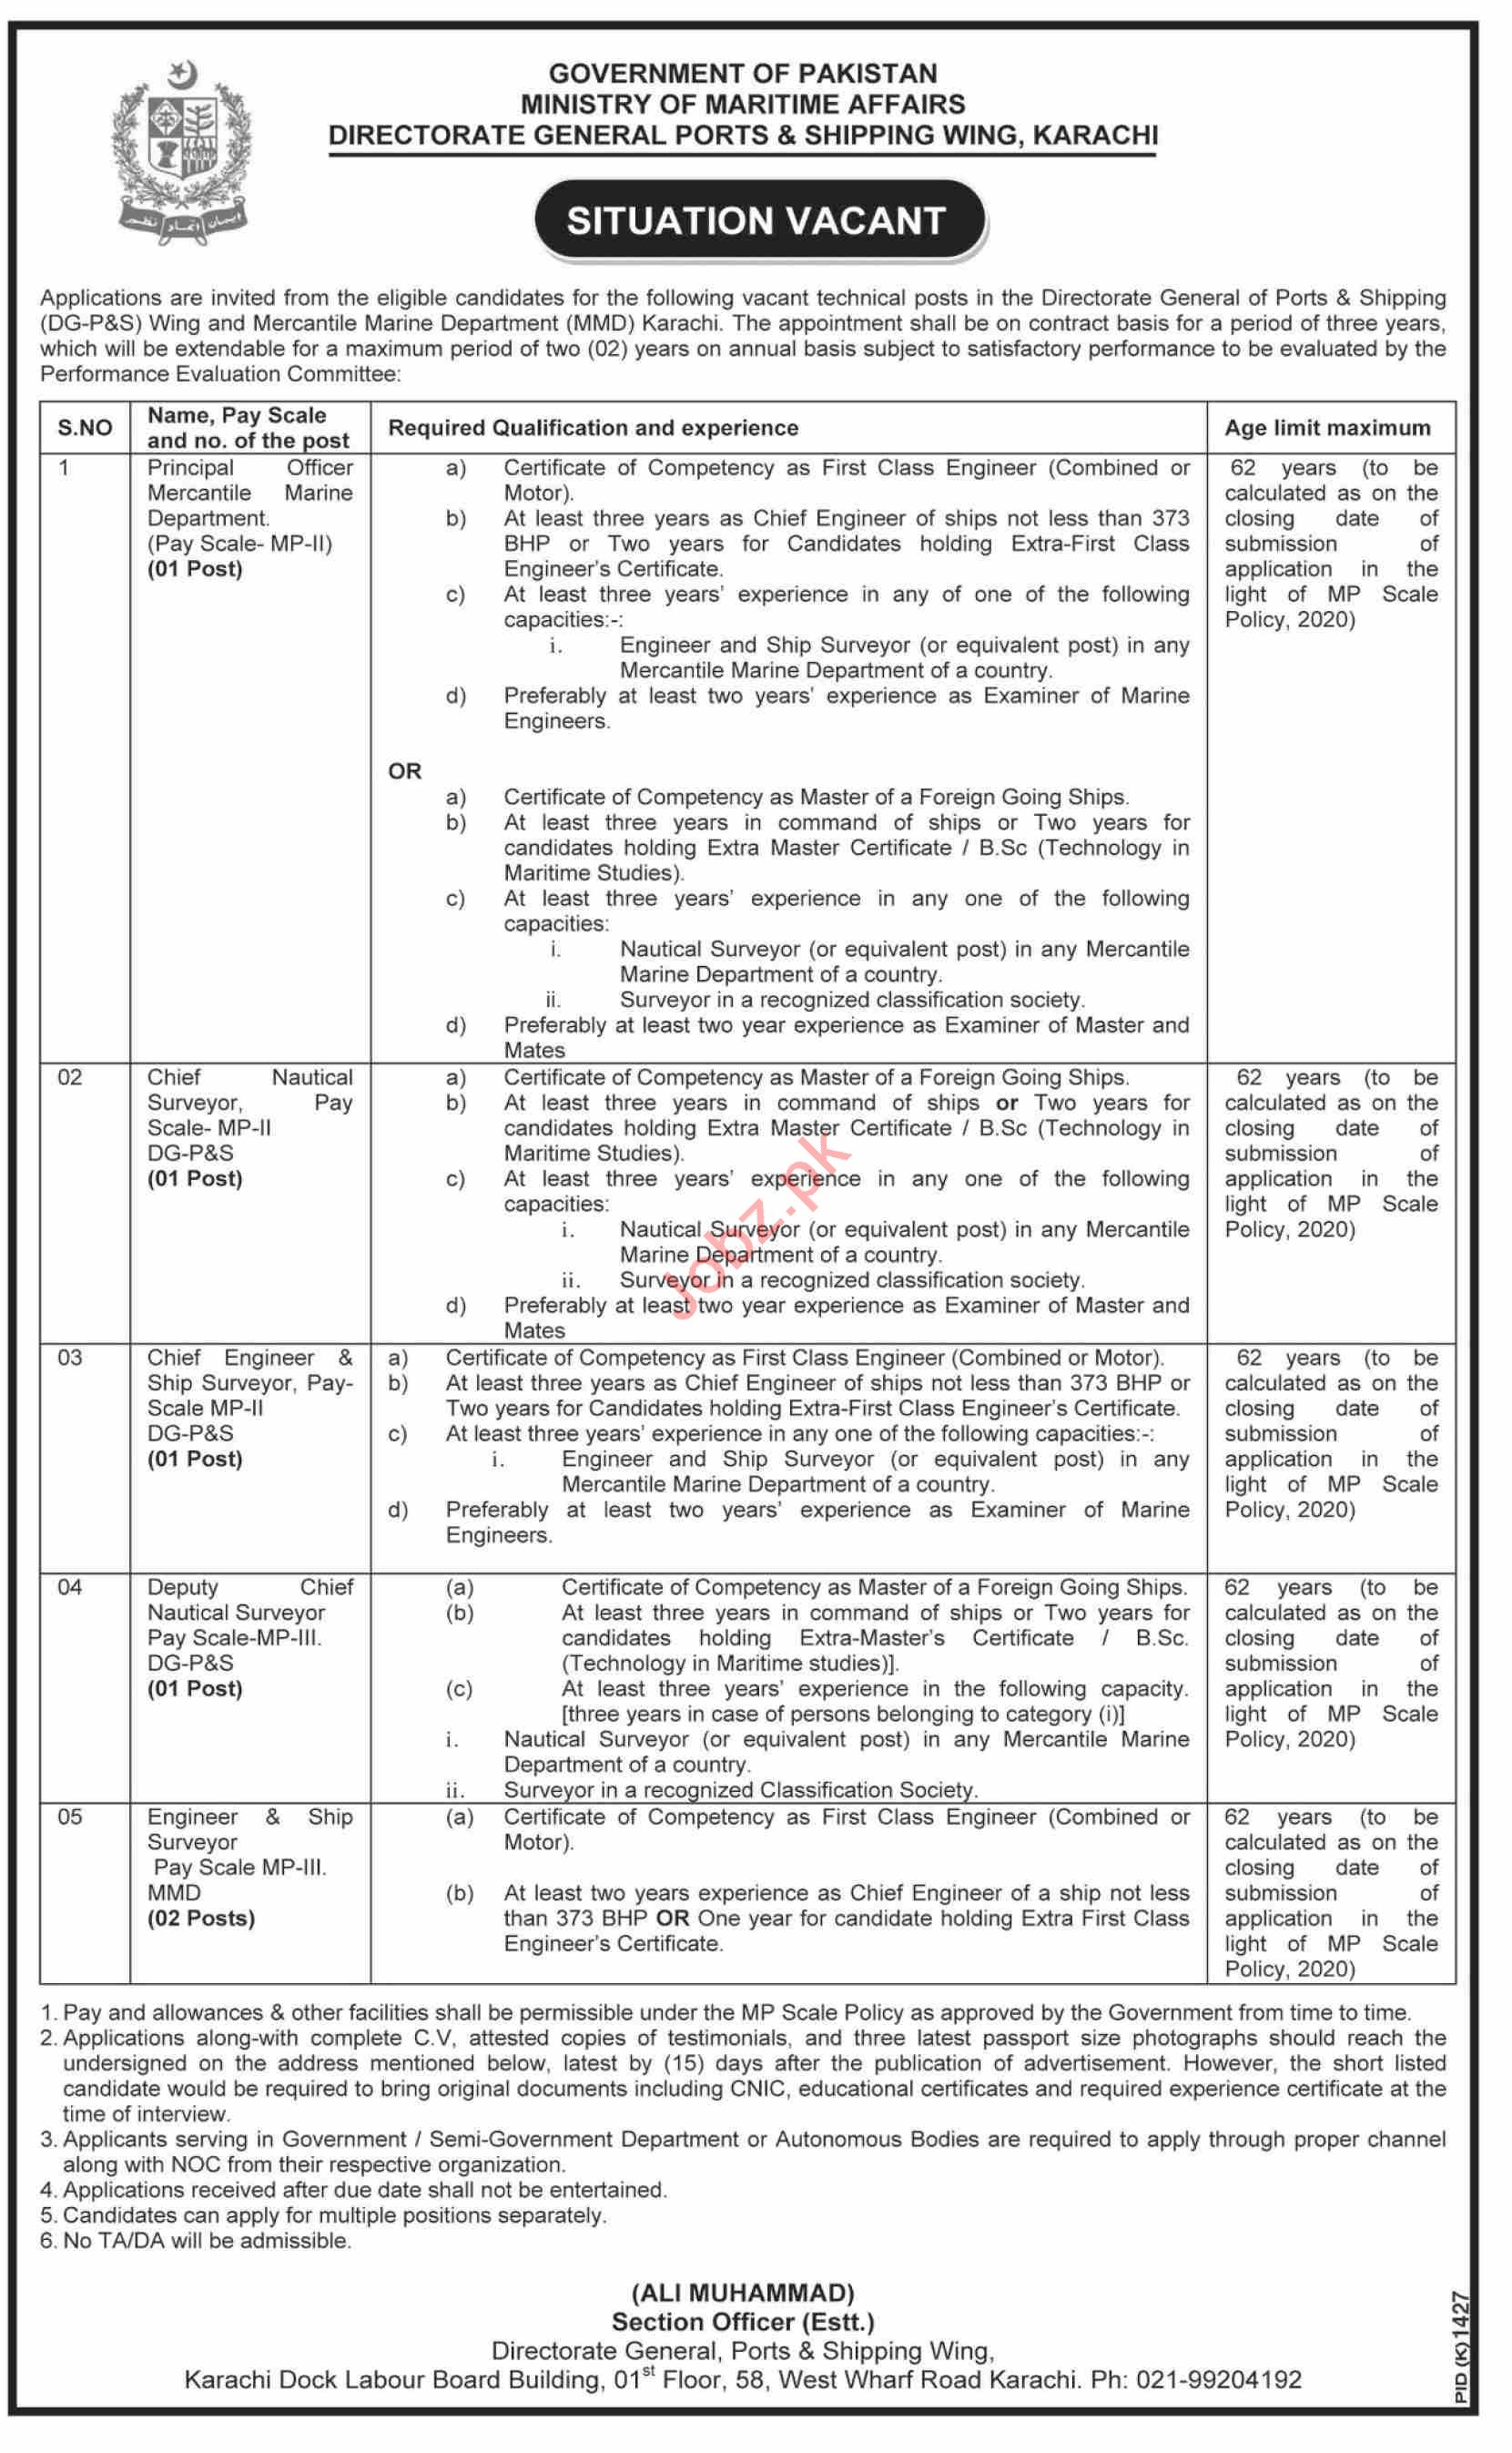 DGPS Wing Directorate General Ports & Shipping Jobs 2020